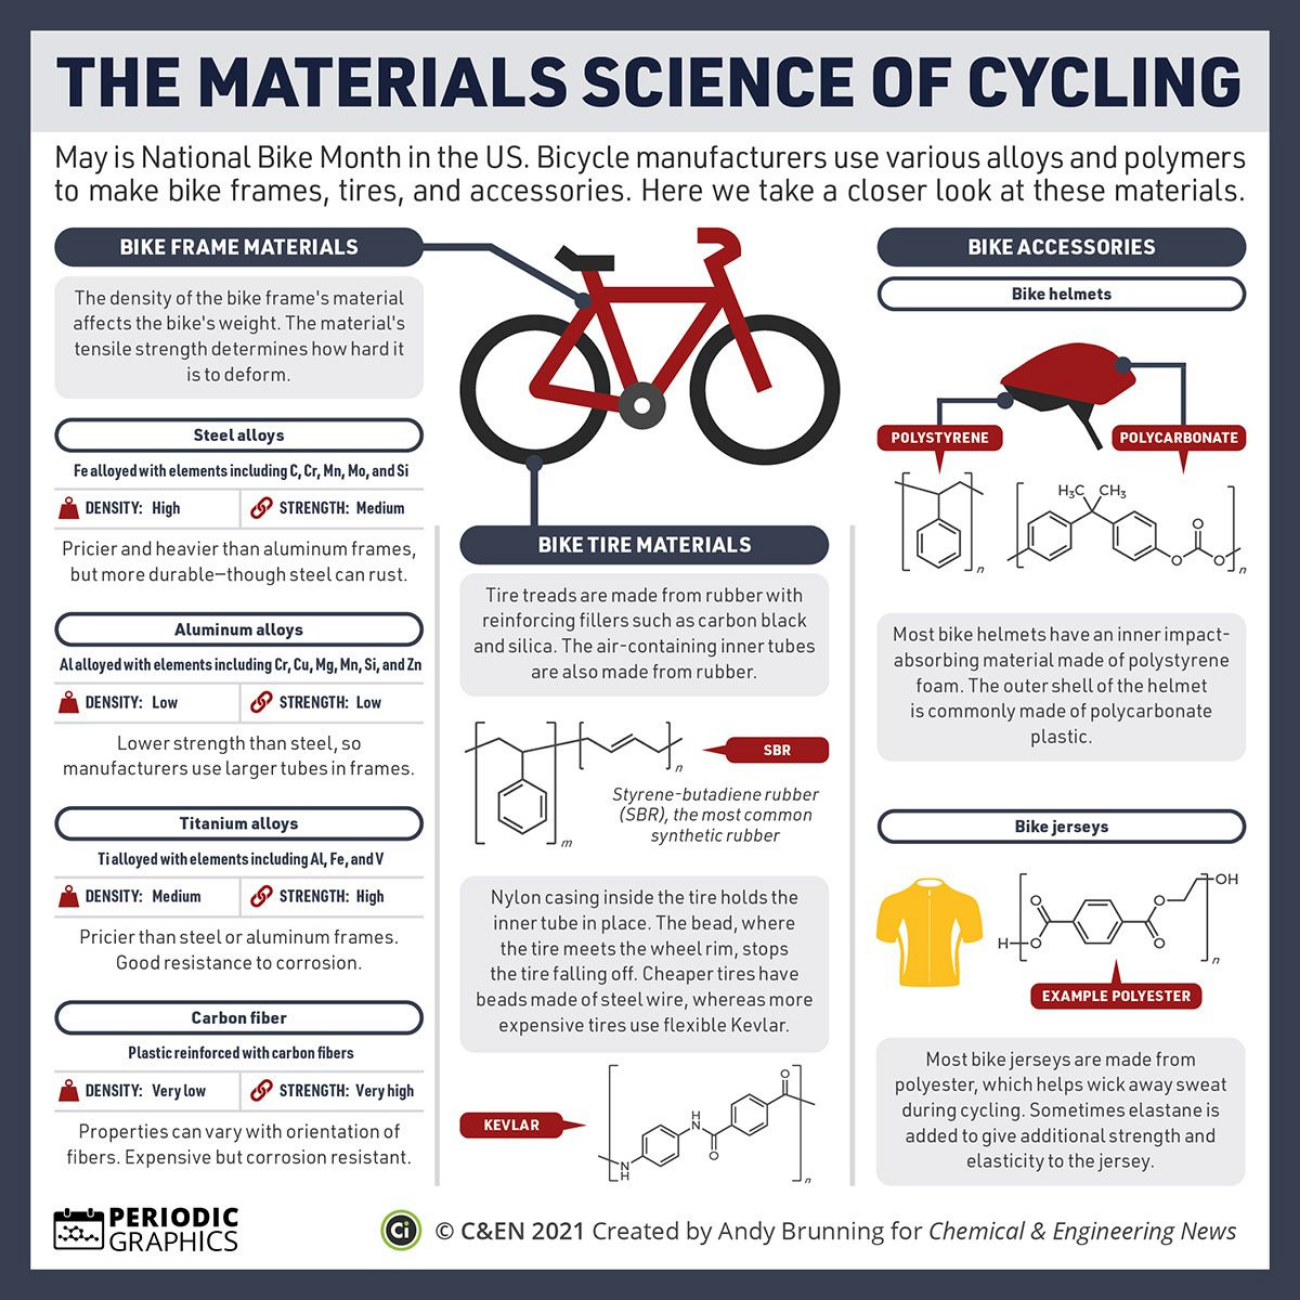 The materials science of cycling.